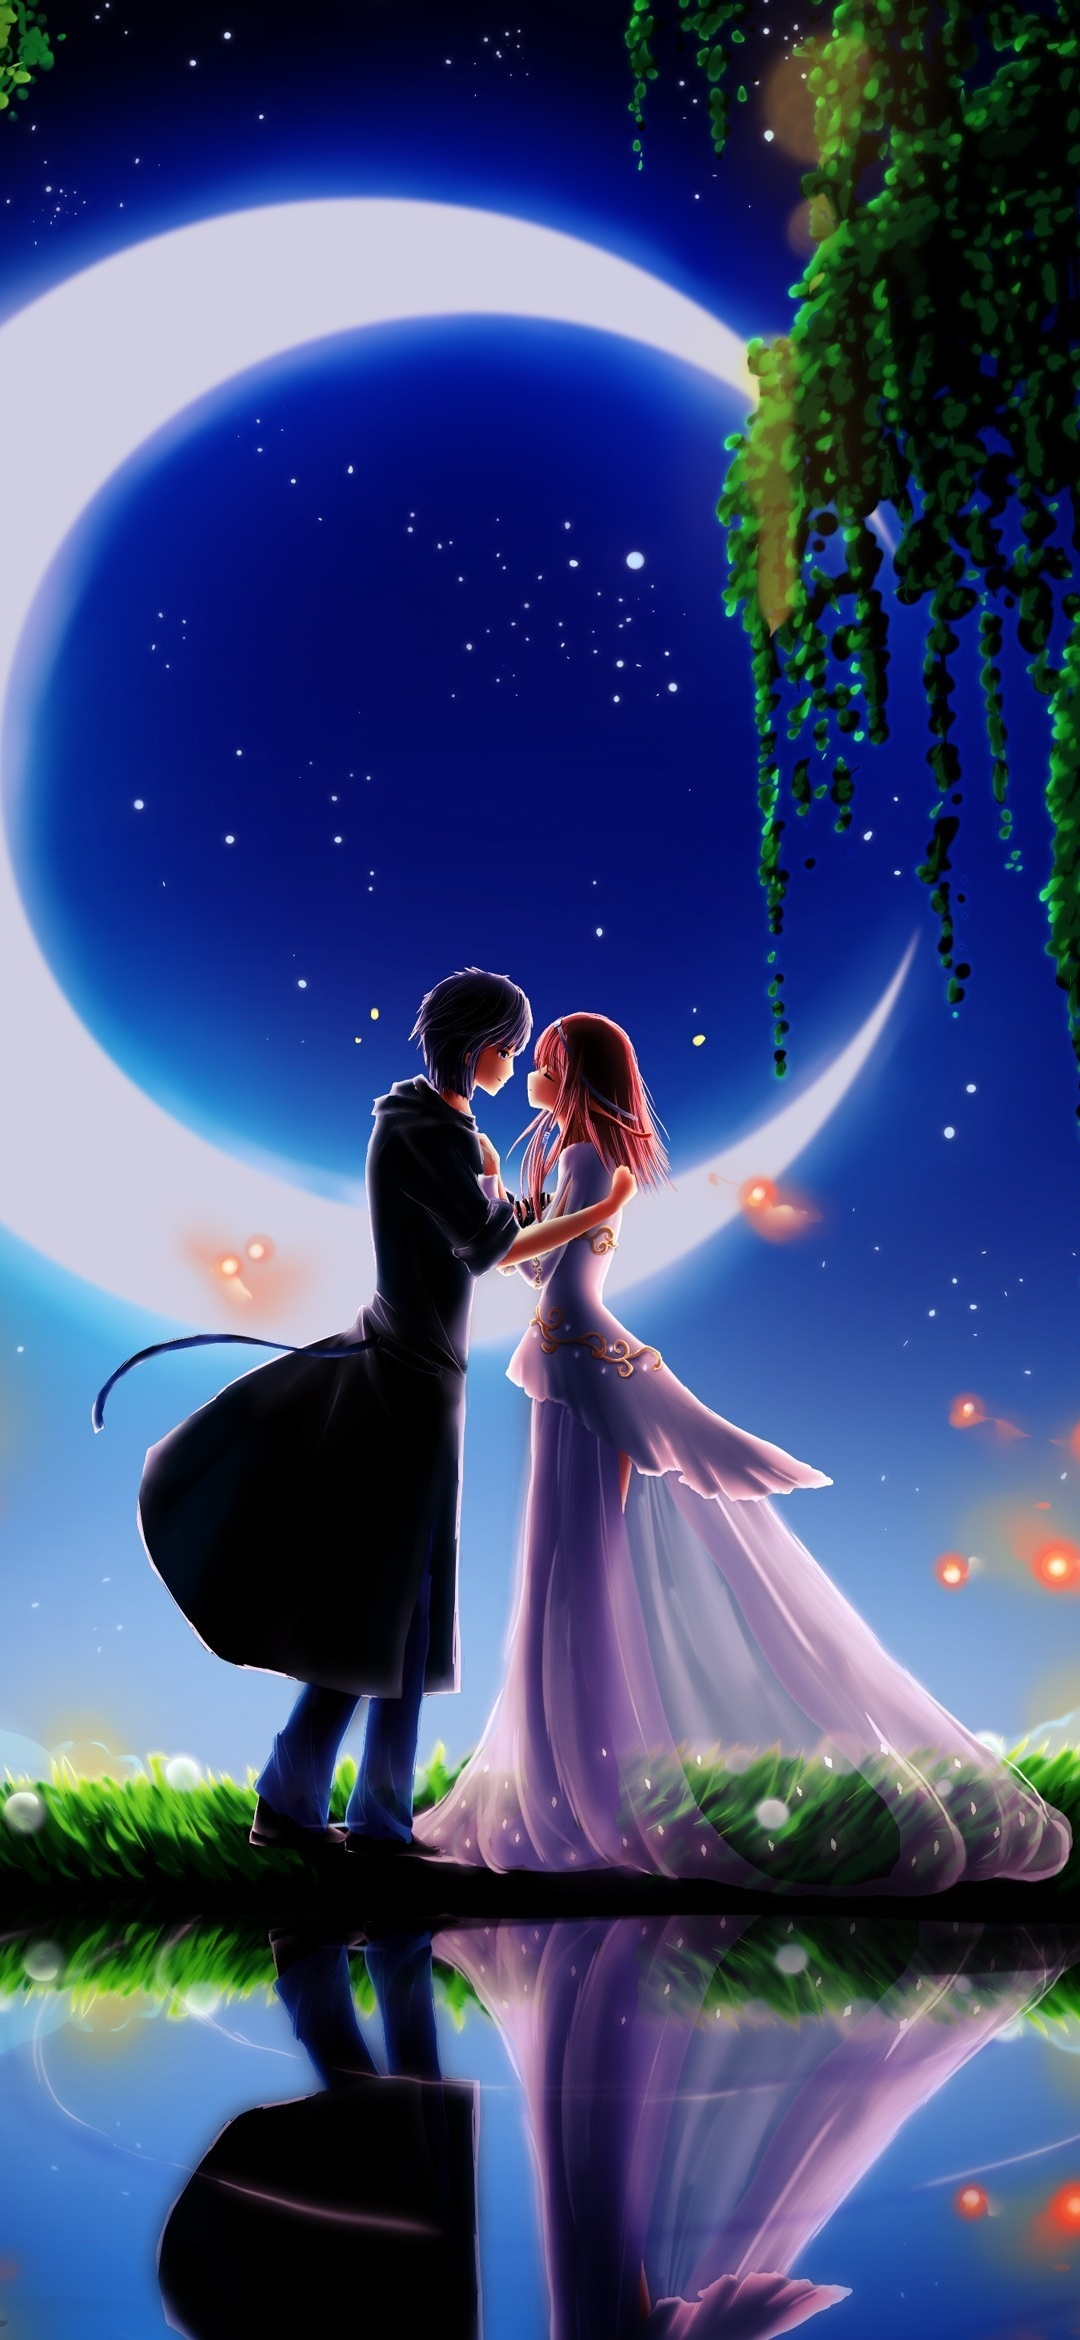 Wallpaper Romantic Wallpaper Love 1080x2340 Download Hd Wallpaper Wallpapertip